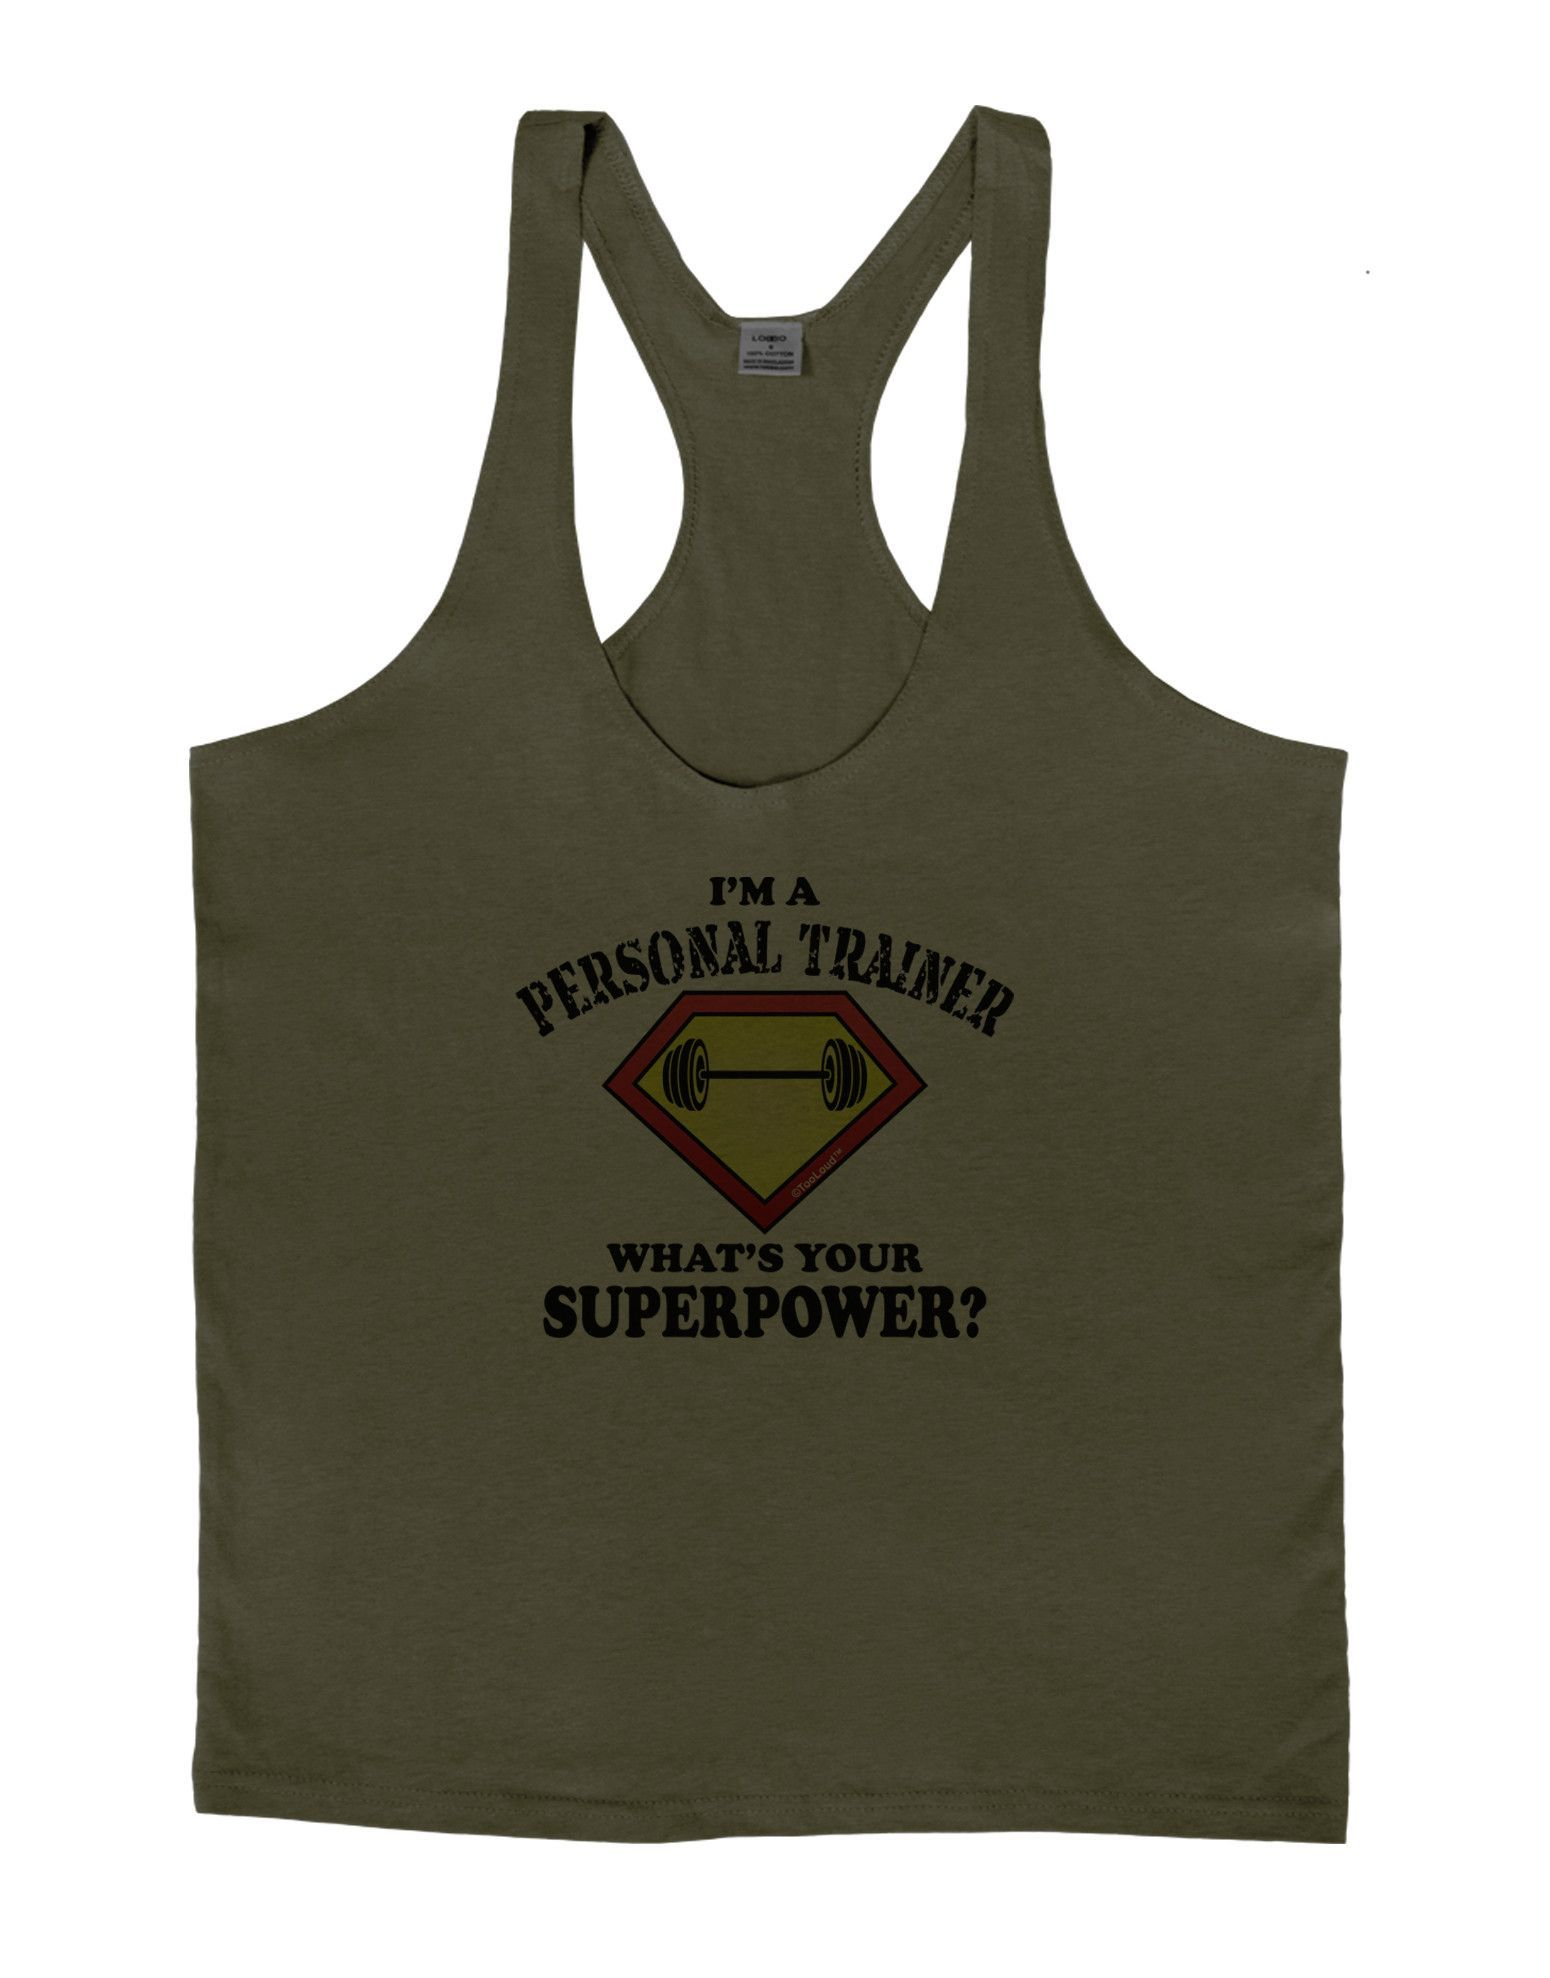 Personal Trainer - Superpower Mens String Tank Top